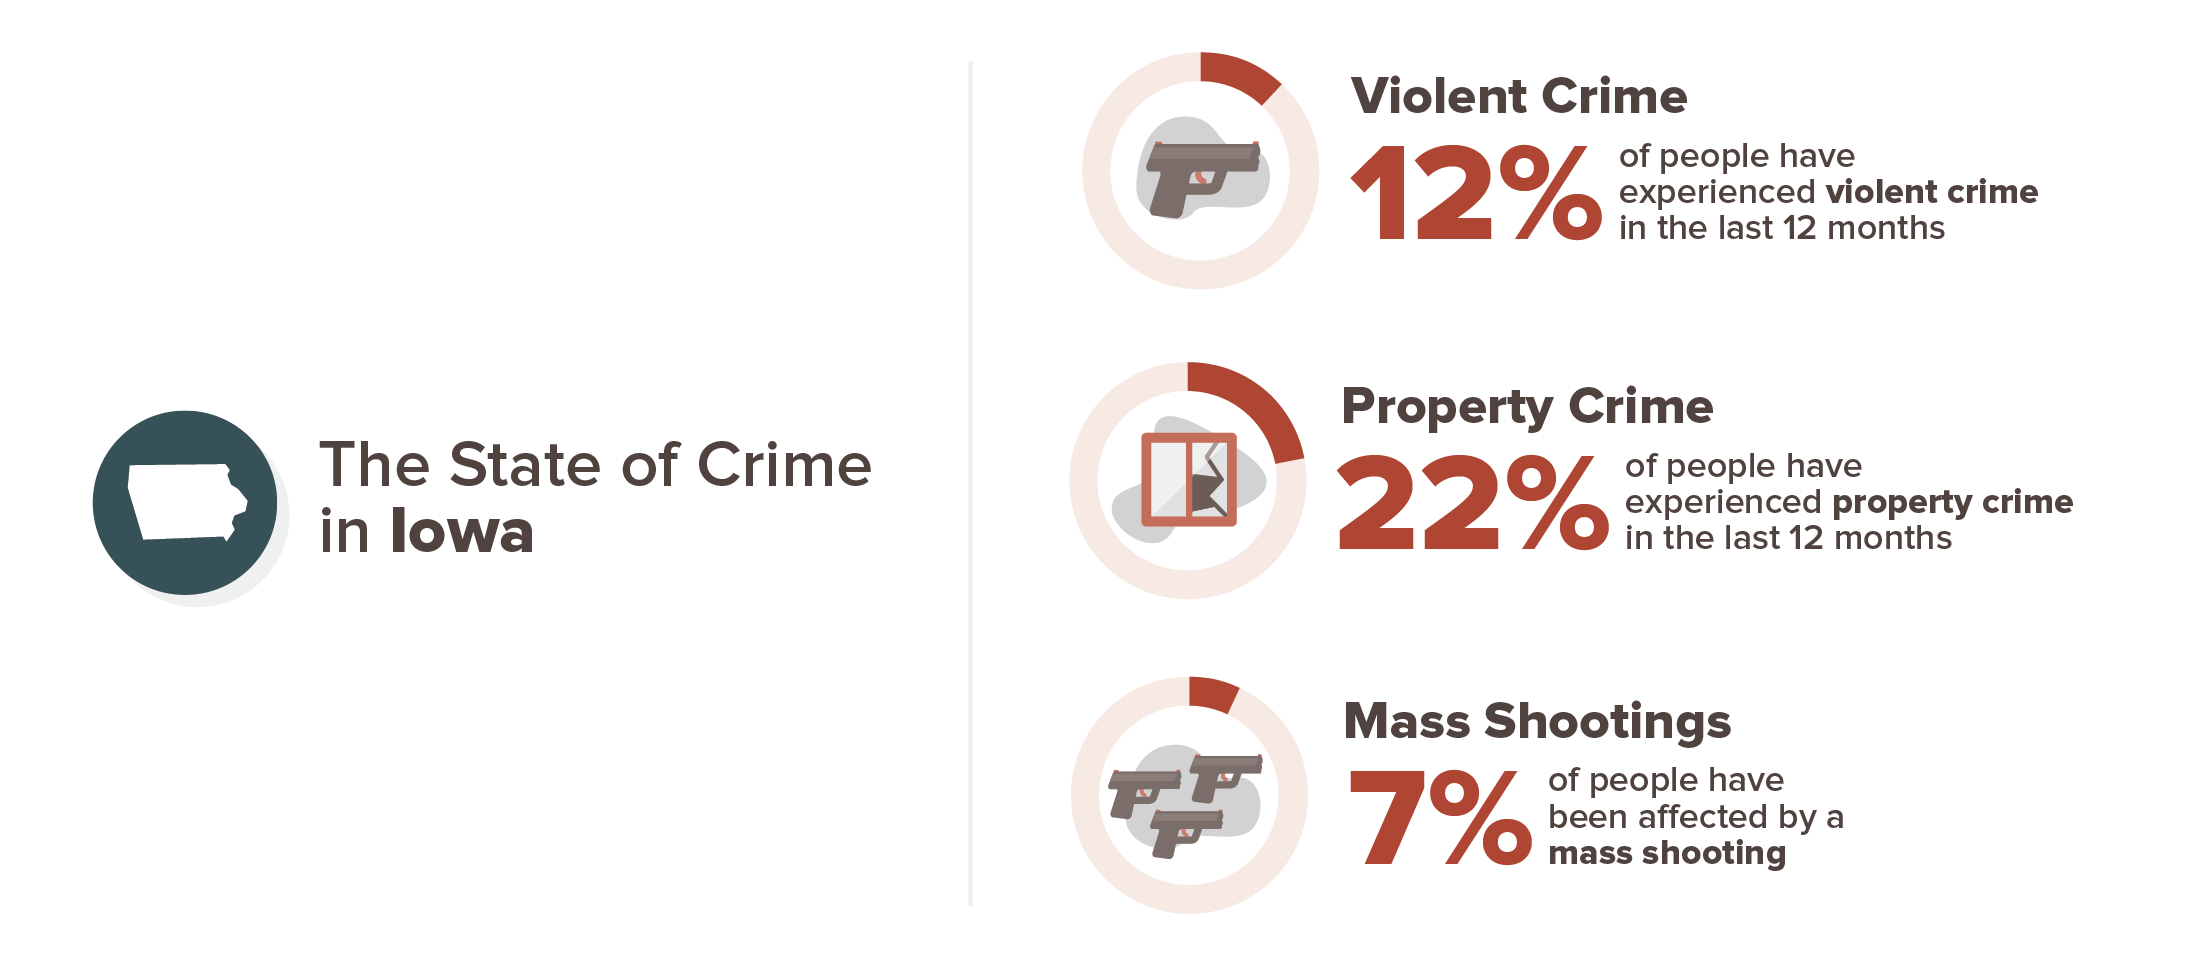 Iowa crime experience infographic; 12% violent crime, 22% property crime, 7% mass shooting